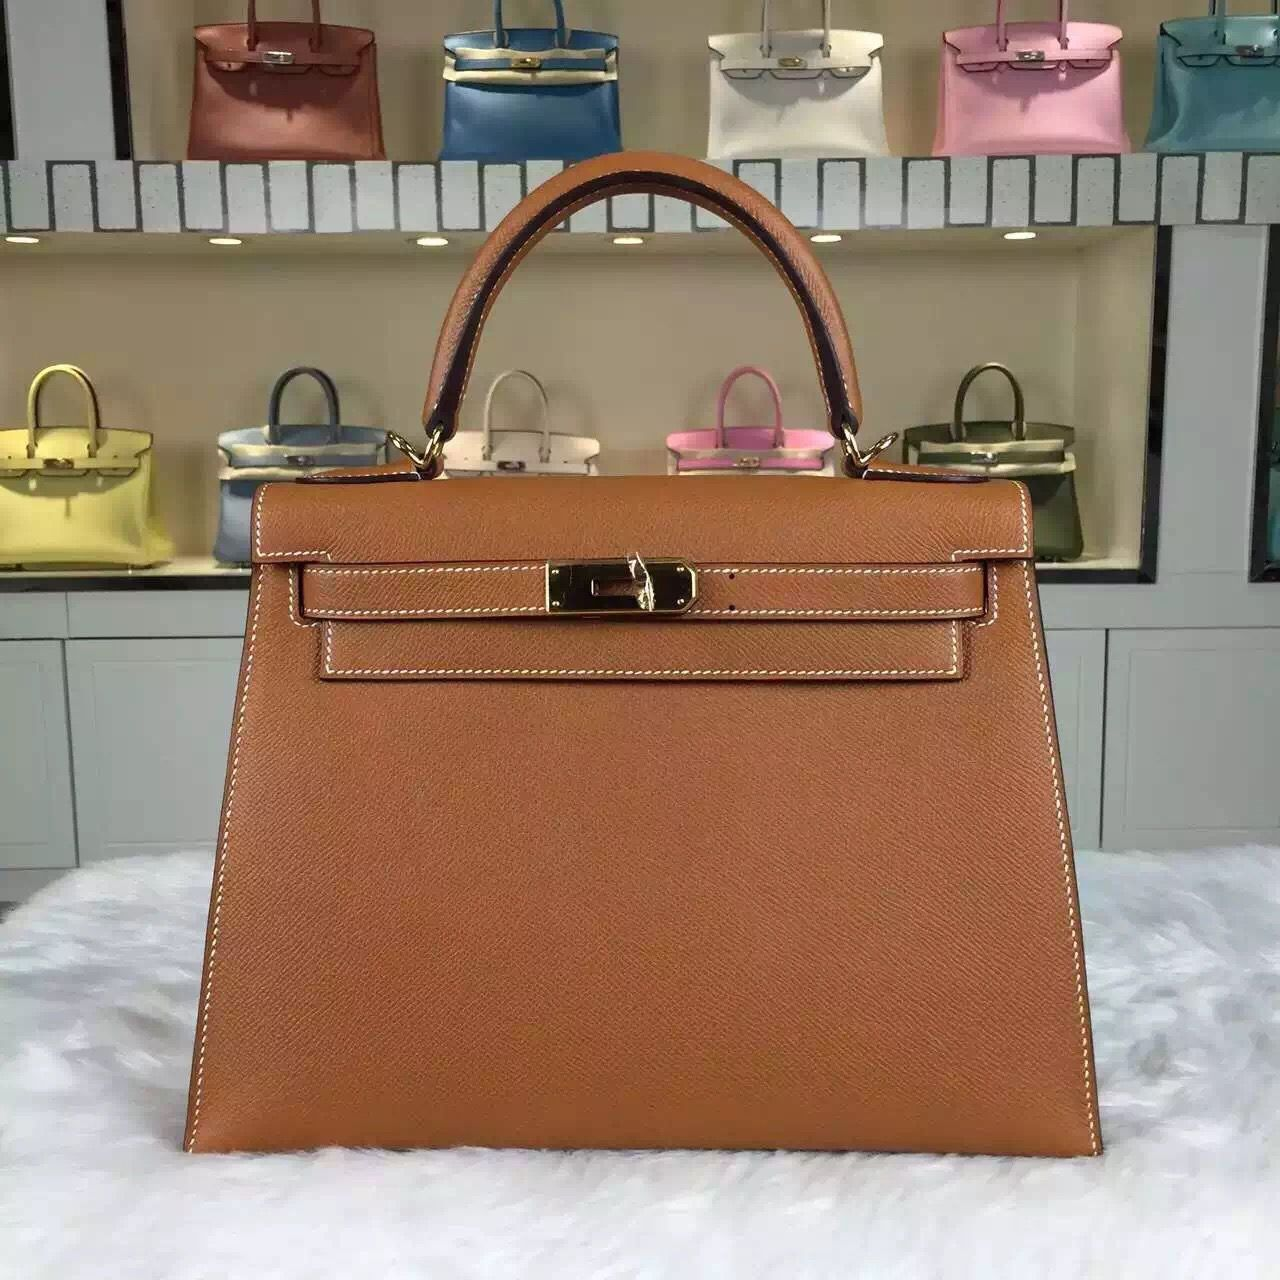 Brand  Hermes  Style  Kelly Bag28CM   Material  Epsom Calfskin Leather Color   CK37 Brown  Hardware  gold silver  Accessories  Padlock and keys 1430c2a8f3f55